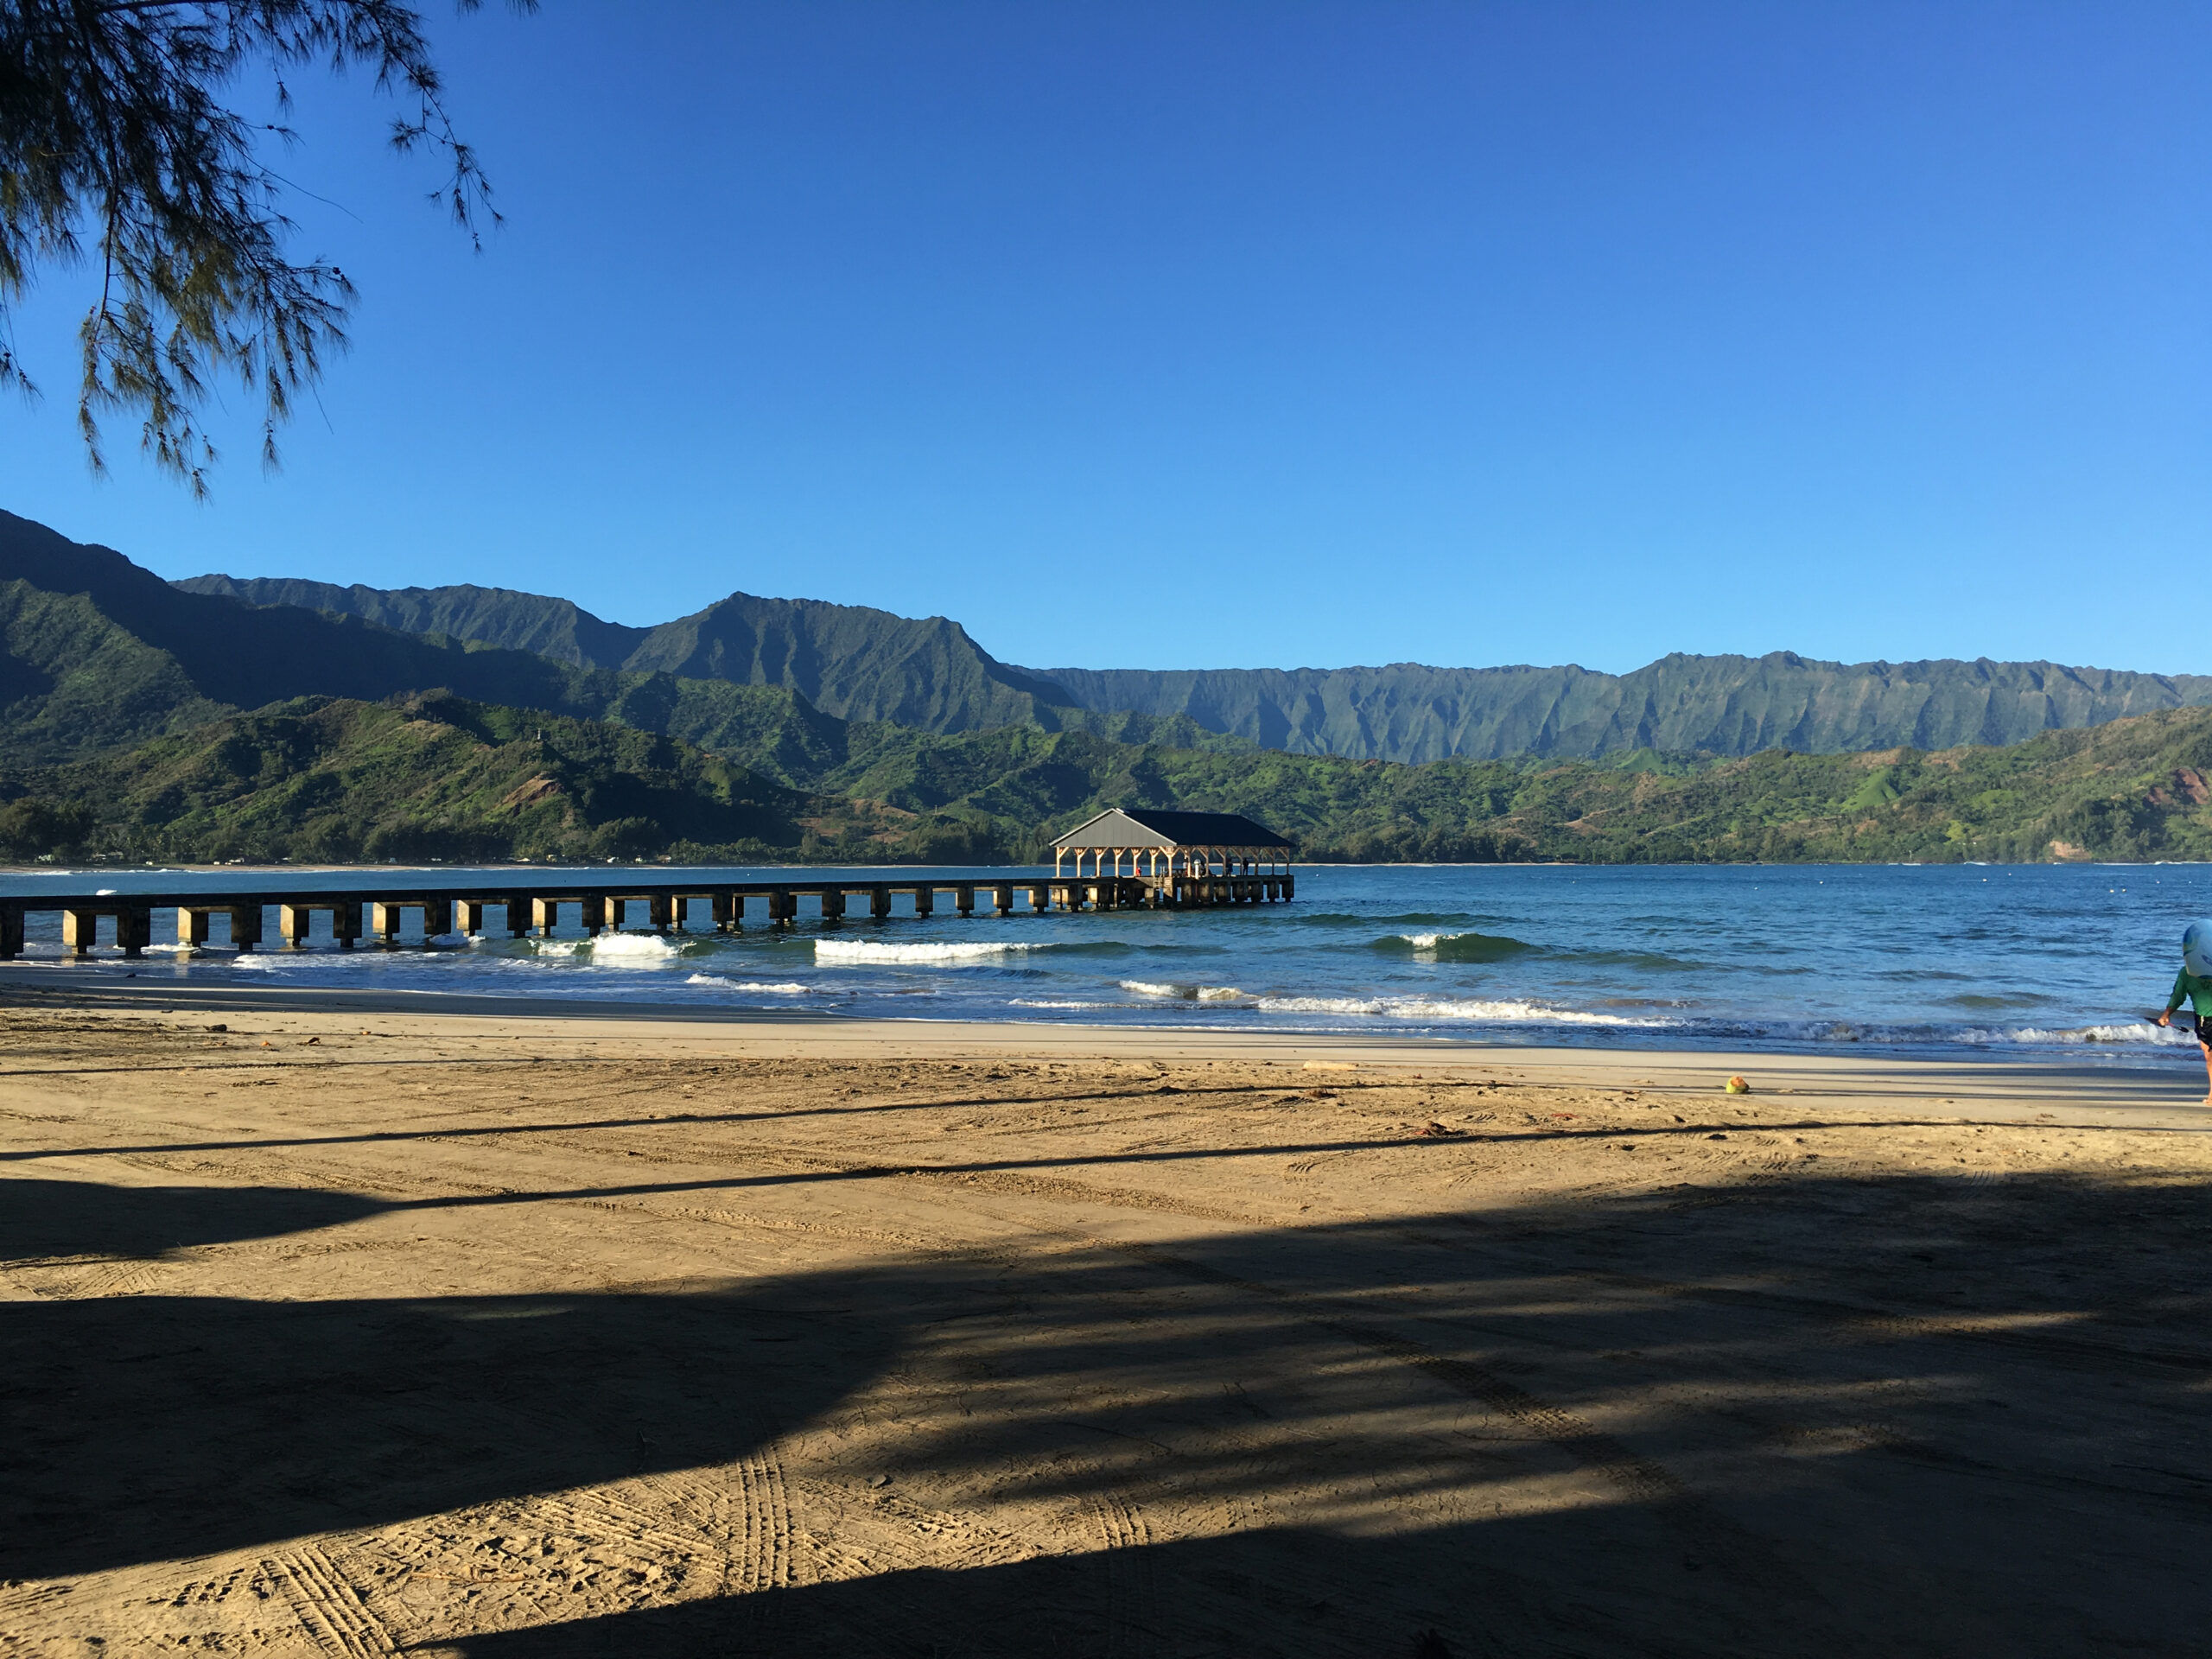 View of Hanalei Bay beach, pier and surrounding mountains